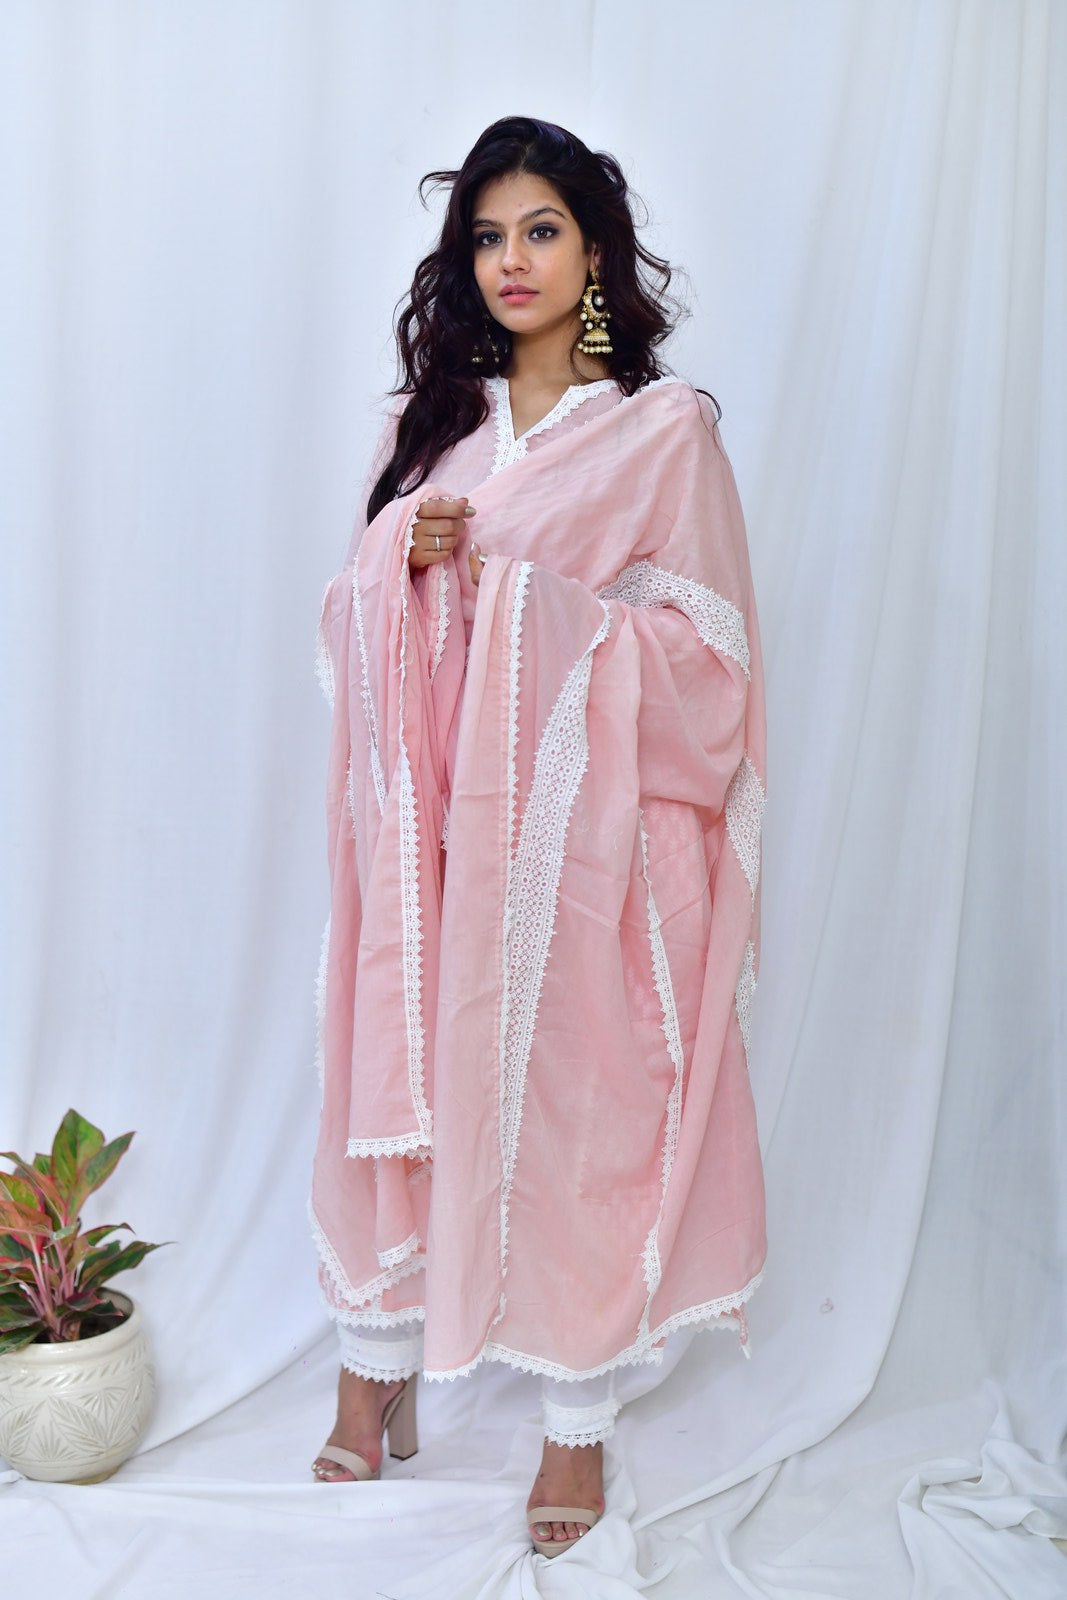 Baby Pink Cotton Embroidered sleeve Suit-Set of 3 - label shreya gupta